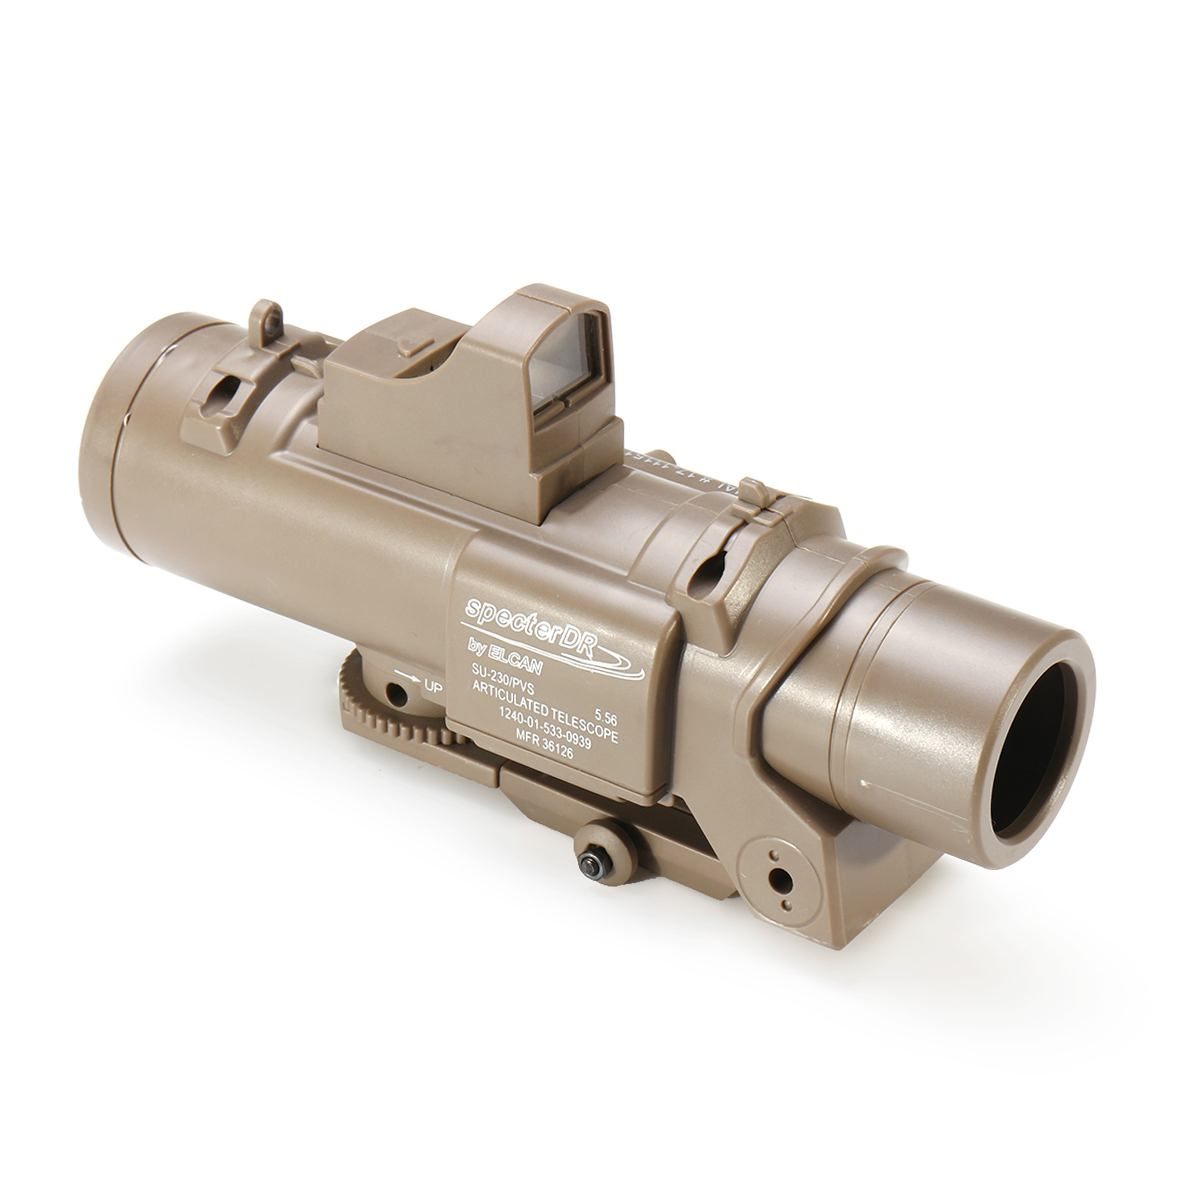 4X Red Dot Sight Tactical Magnifier Scope Primary Hunting For Gel Ball For Blaster